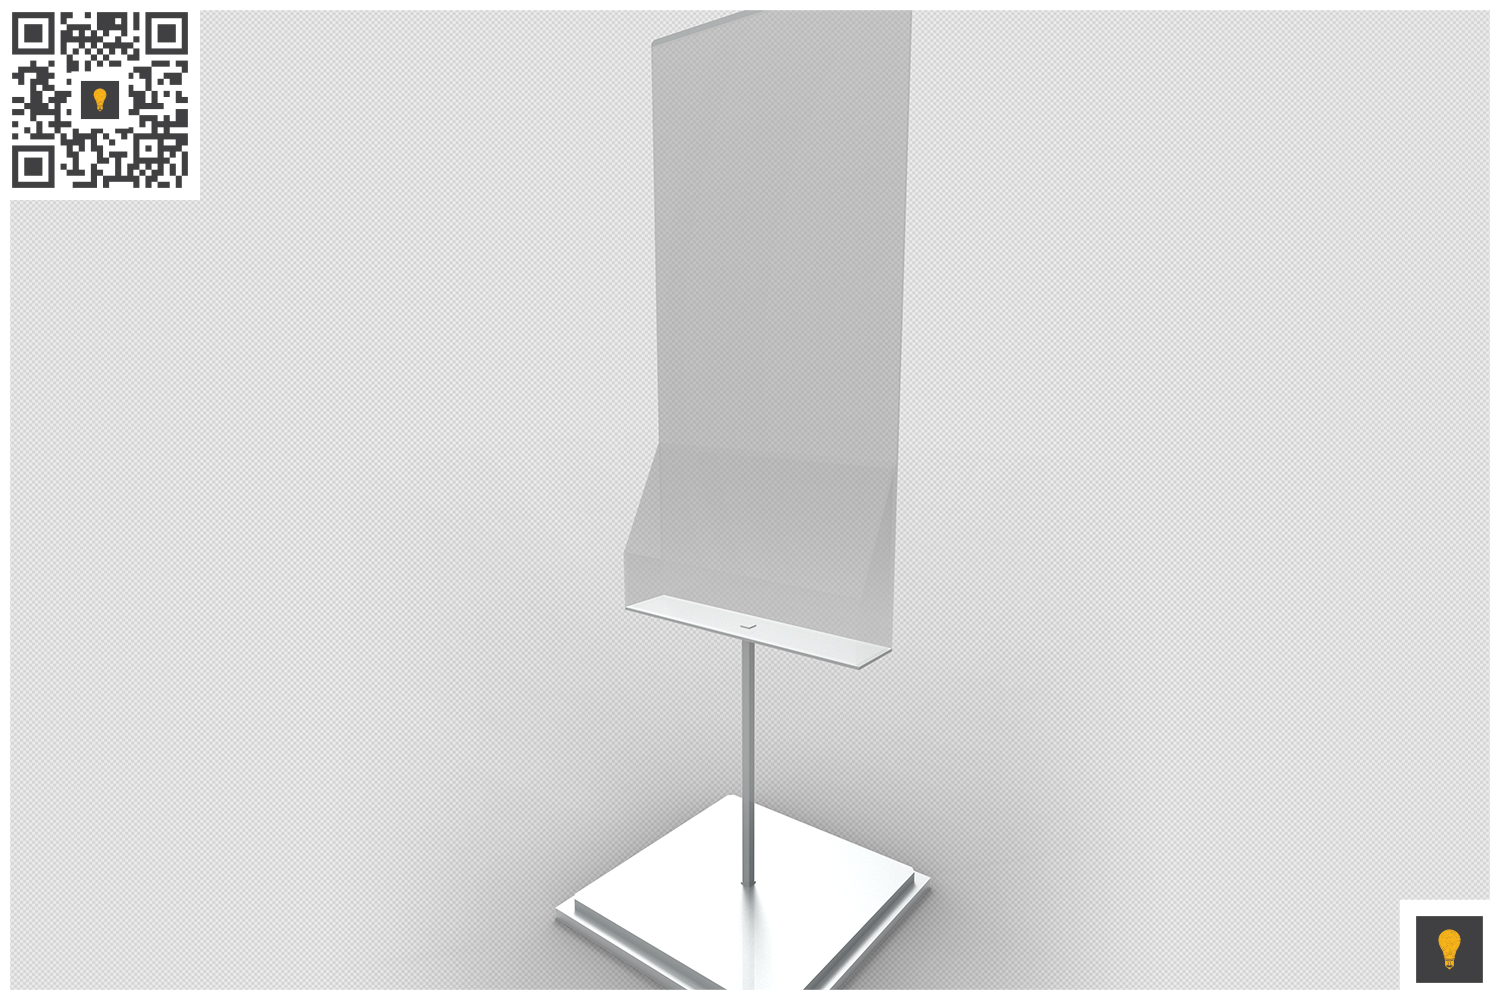 Poster Stand with Rack 3D Render example image 2